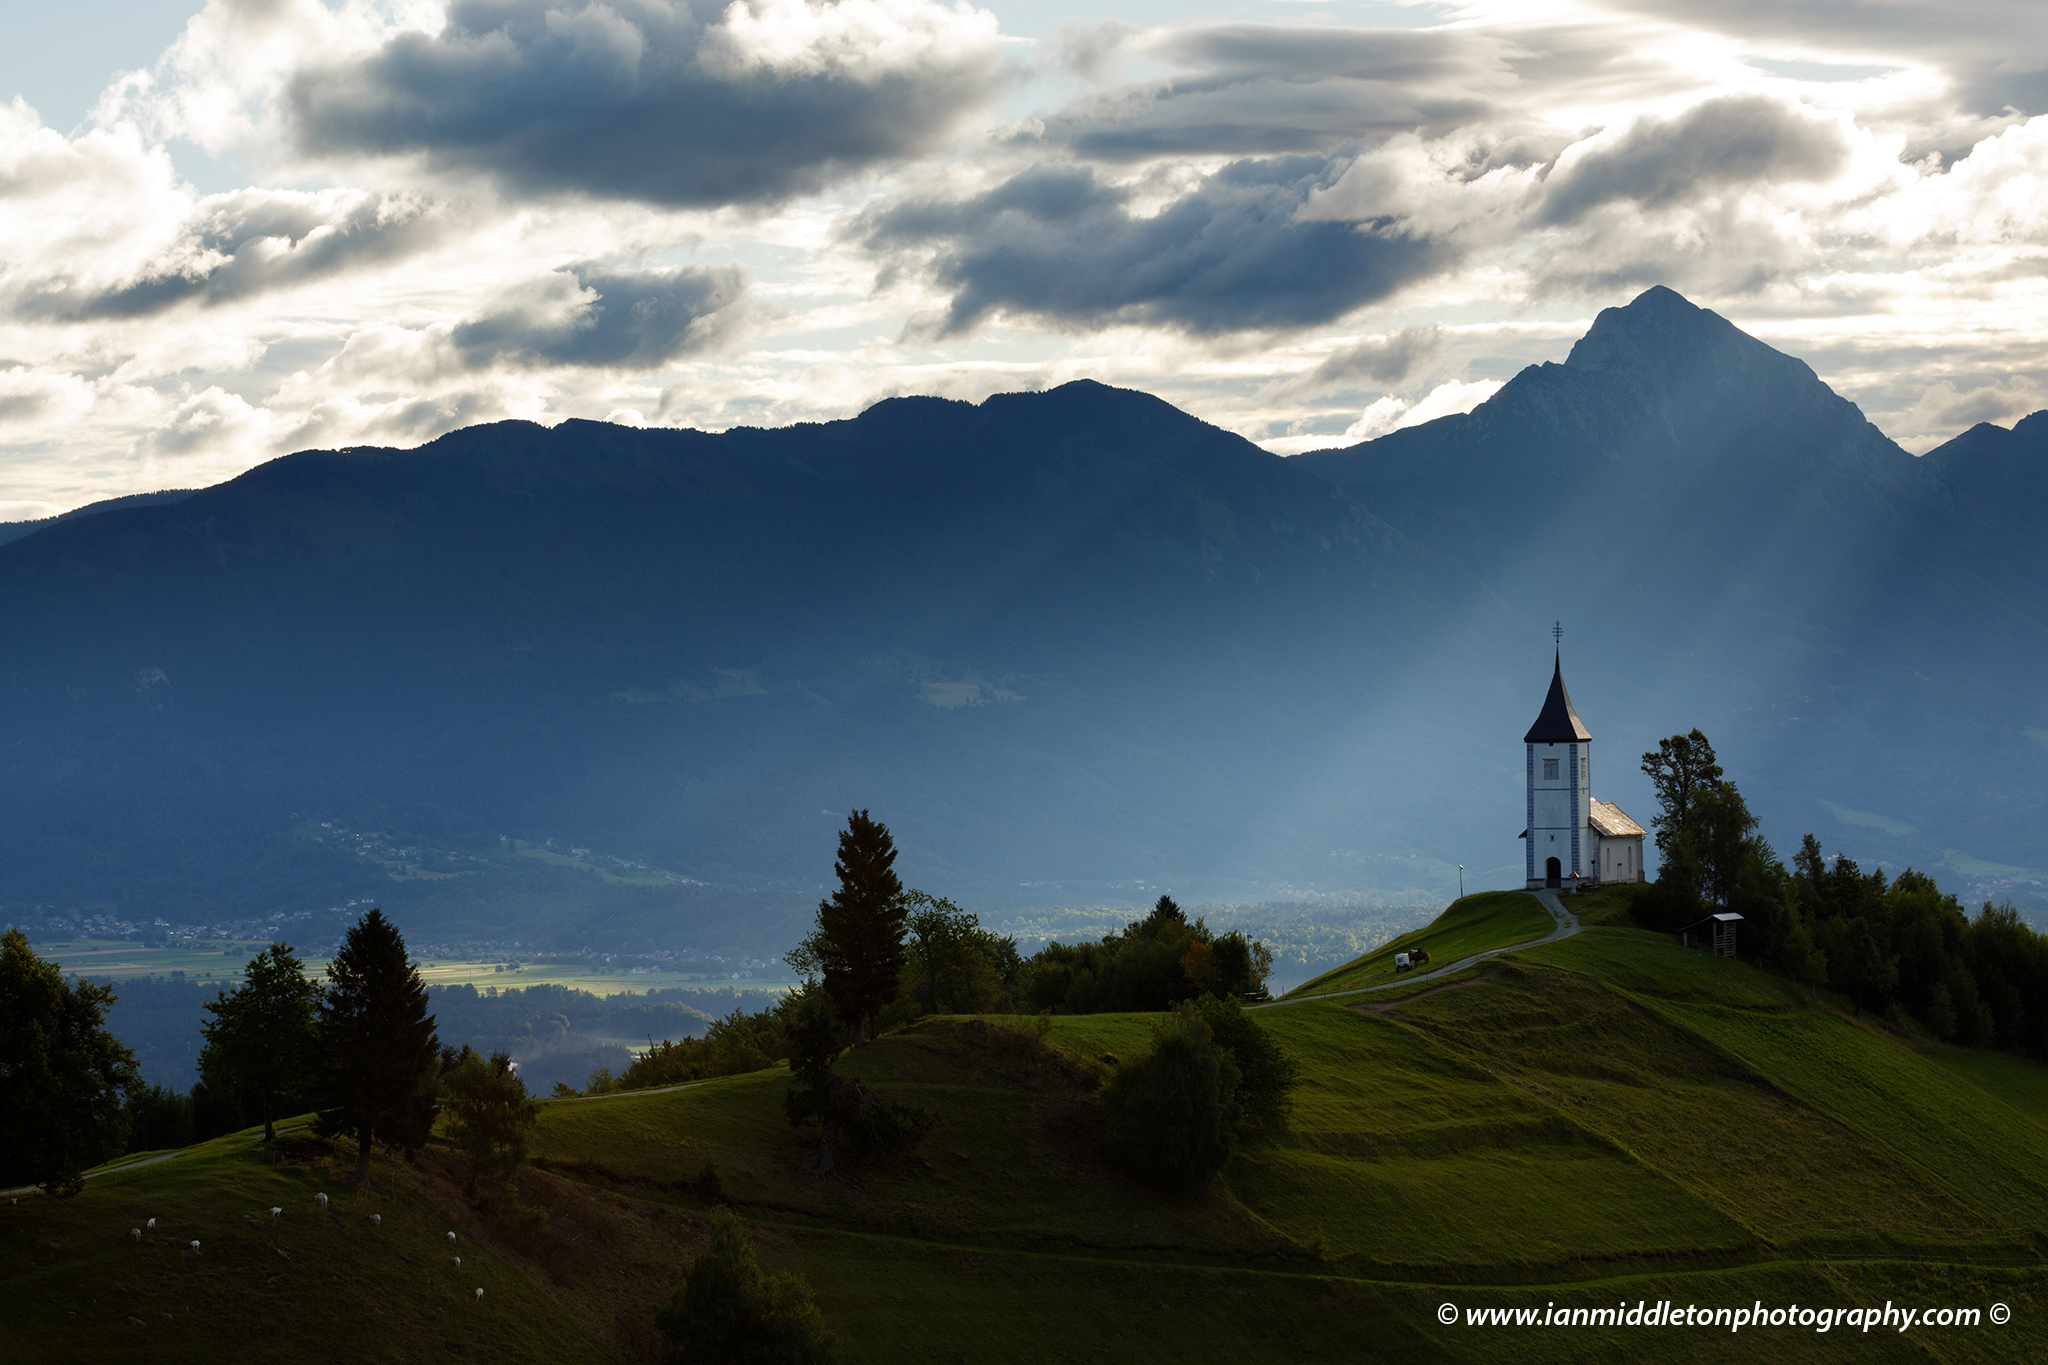 Jamnik church of Saints Primus and Felician, perched on a hill on the Jelovica Plateau with the kamnik alps and Storzic mountain in the background, Slovenia.